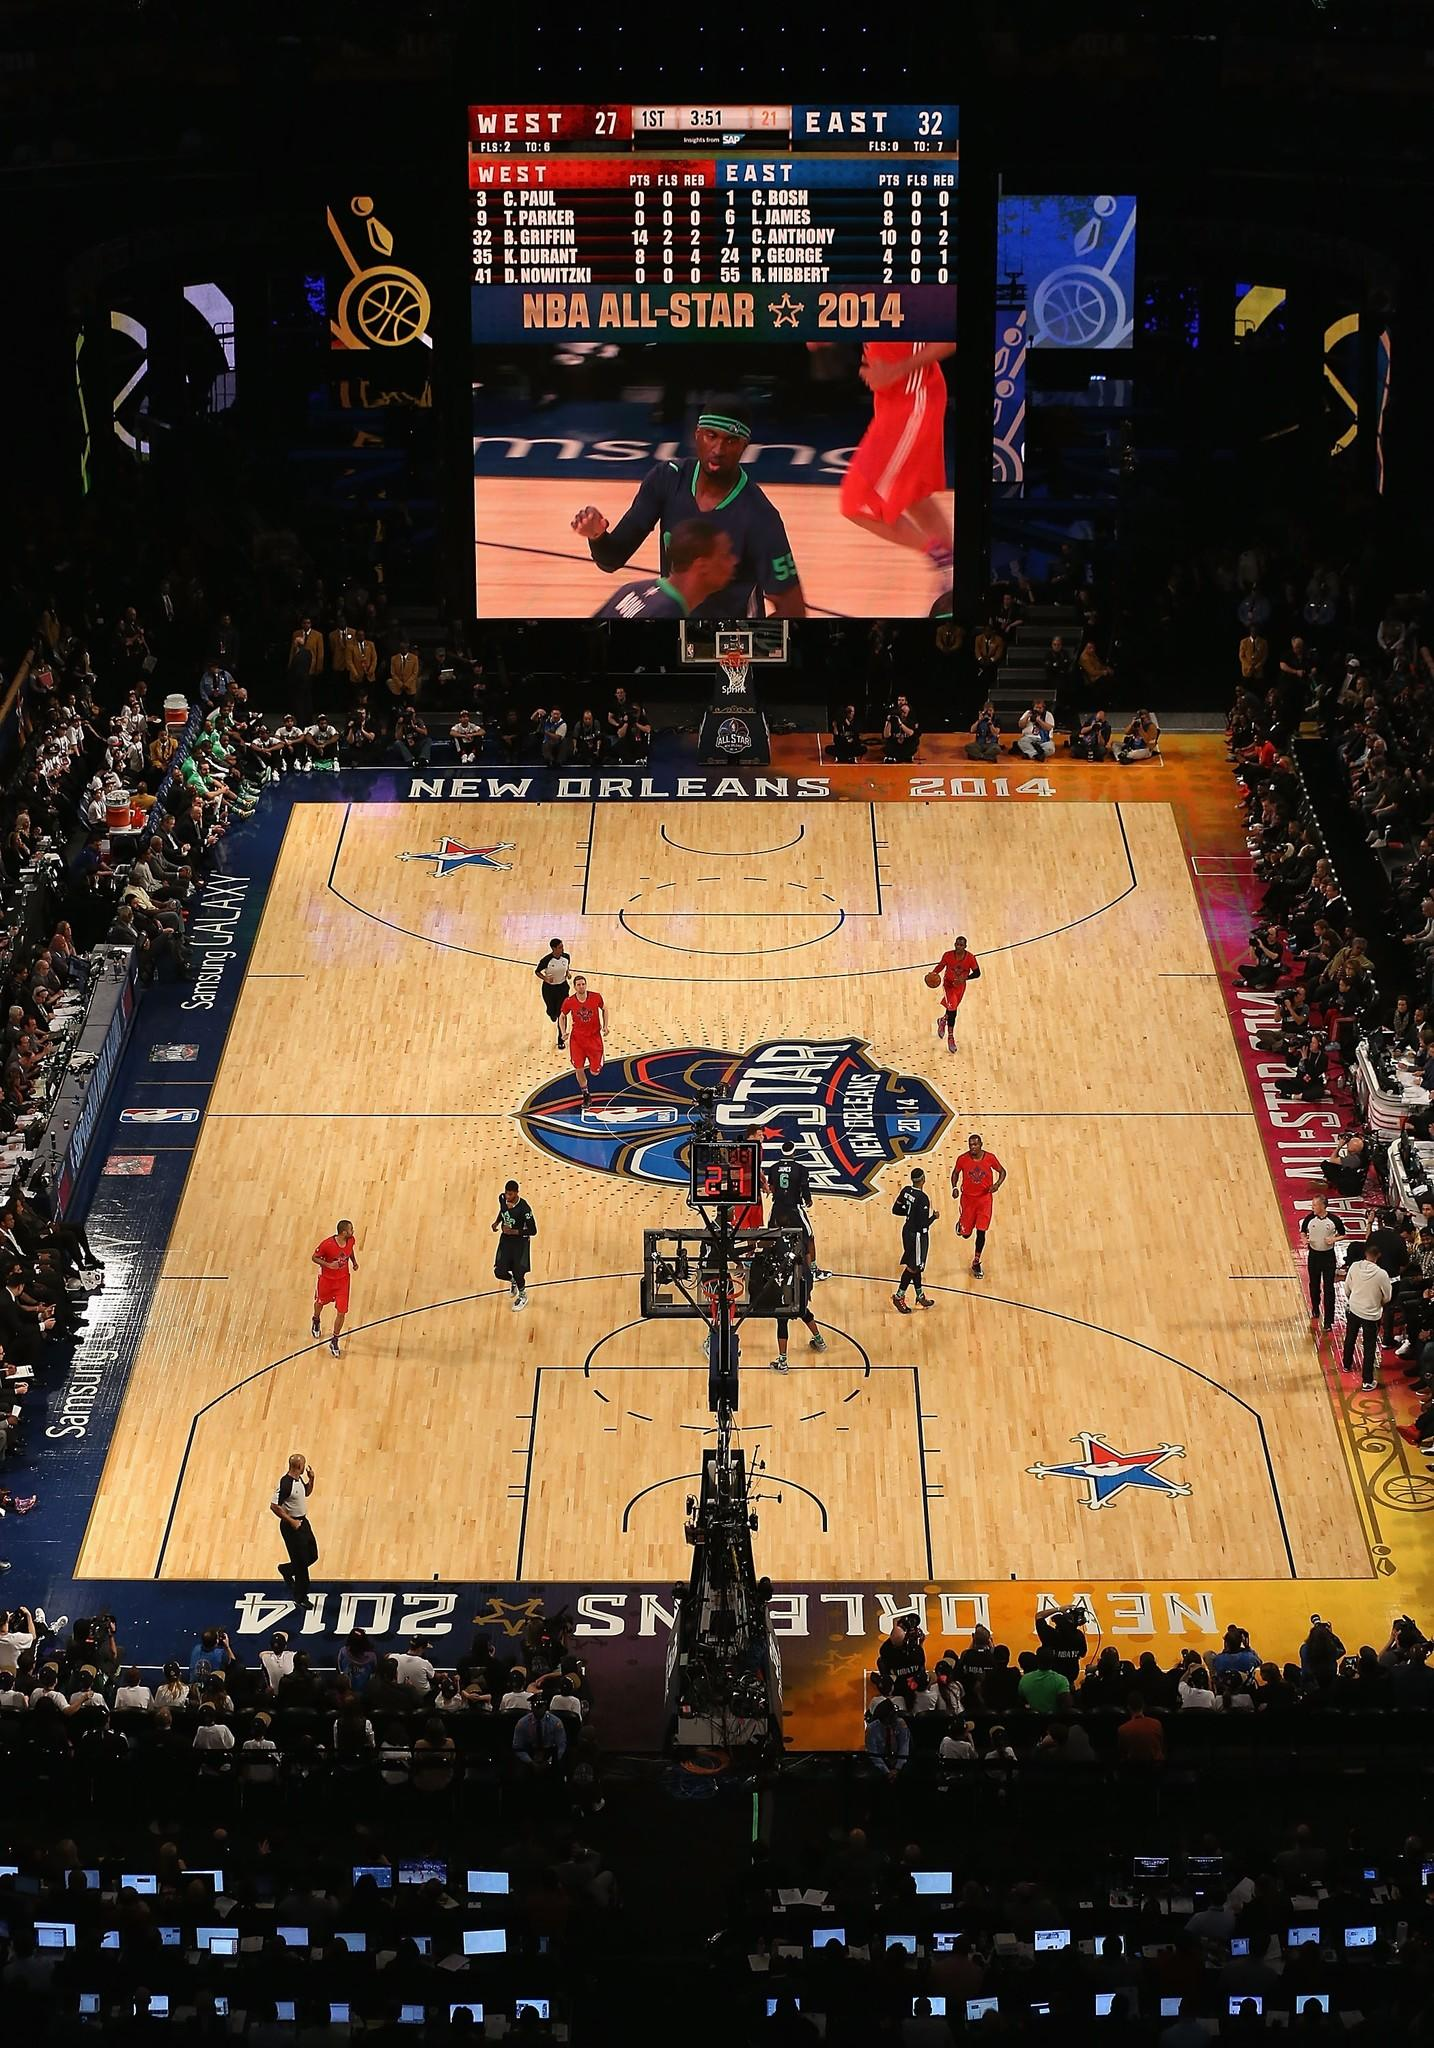 General view of the action between the Eastern Conference and Western Conference during 2014 NBA All-Star game at the Smoothie King Center.